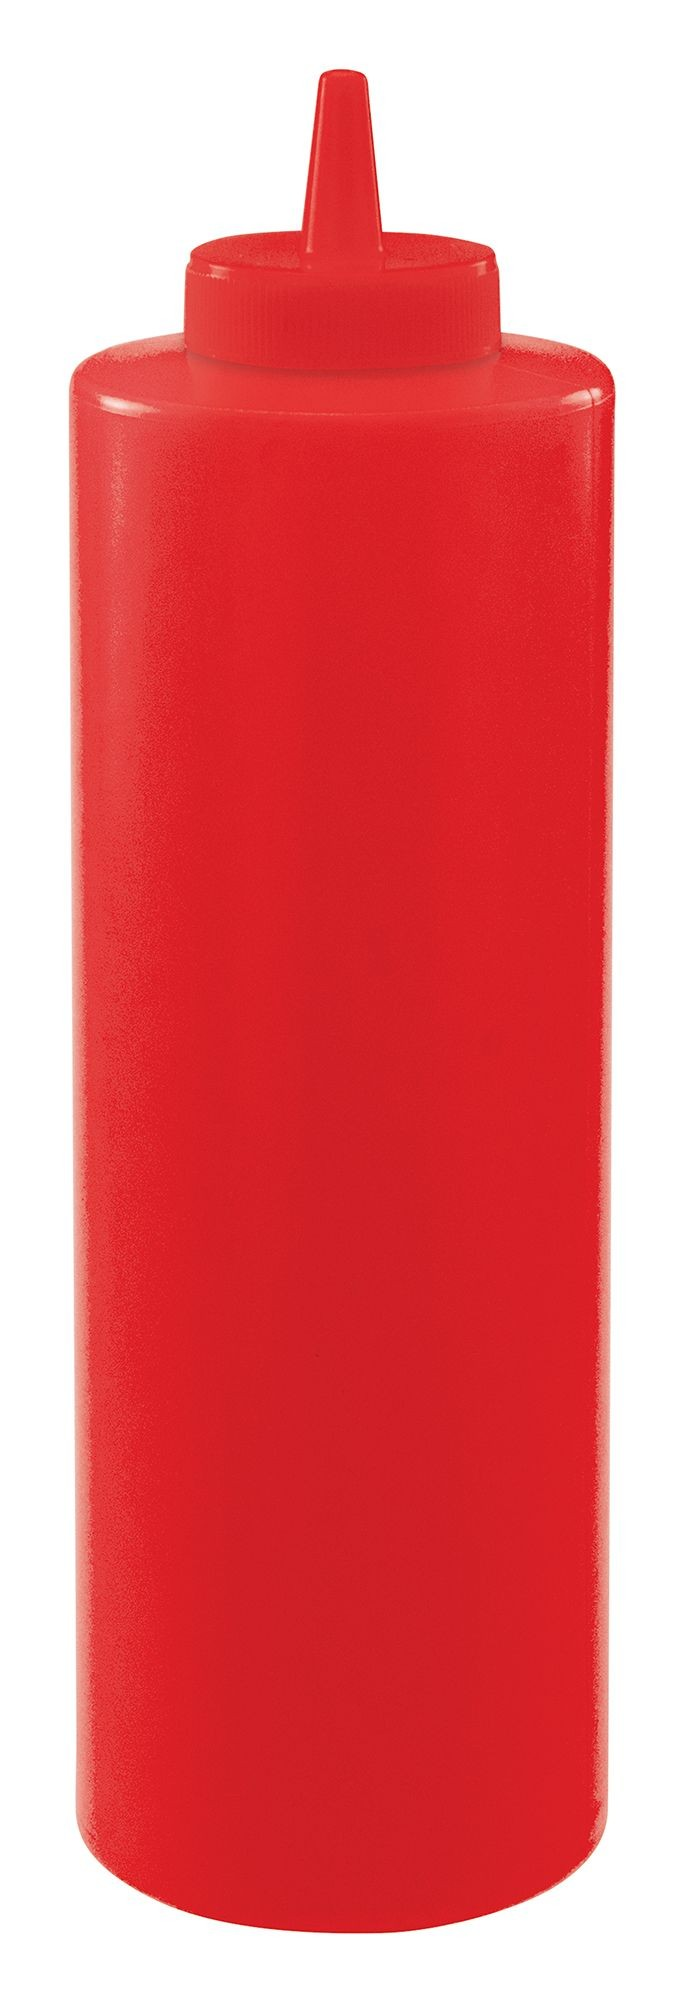 Winco psb-24r Red Plastic 24 oz. Squeeze Bottle